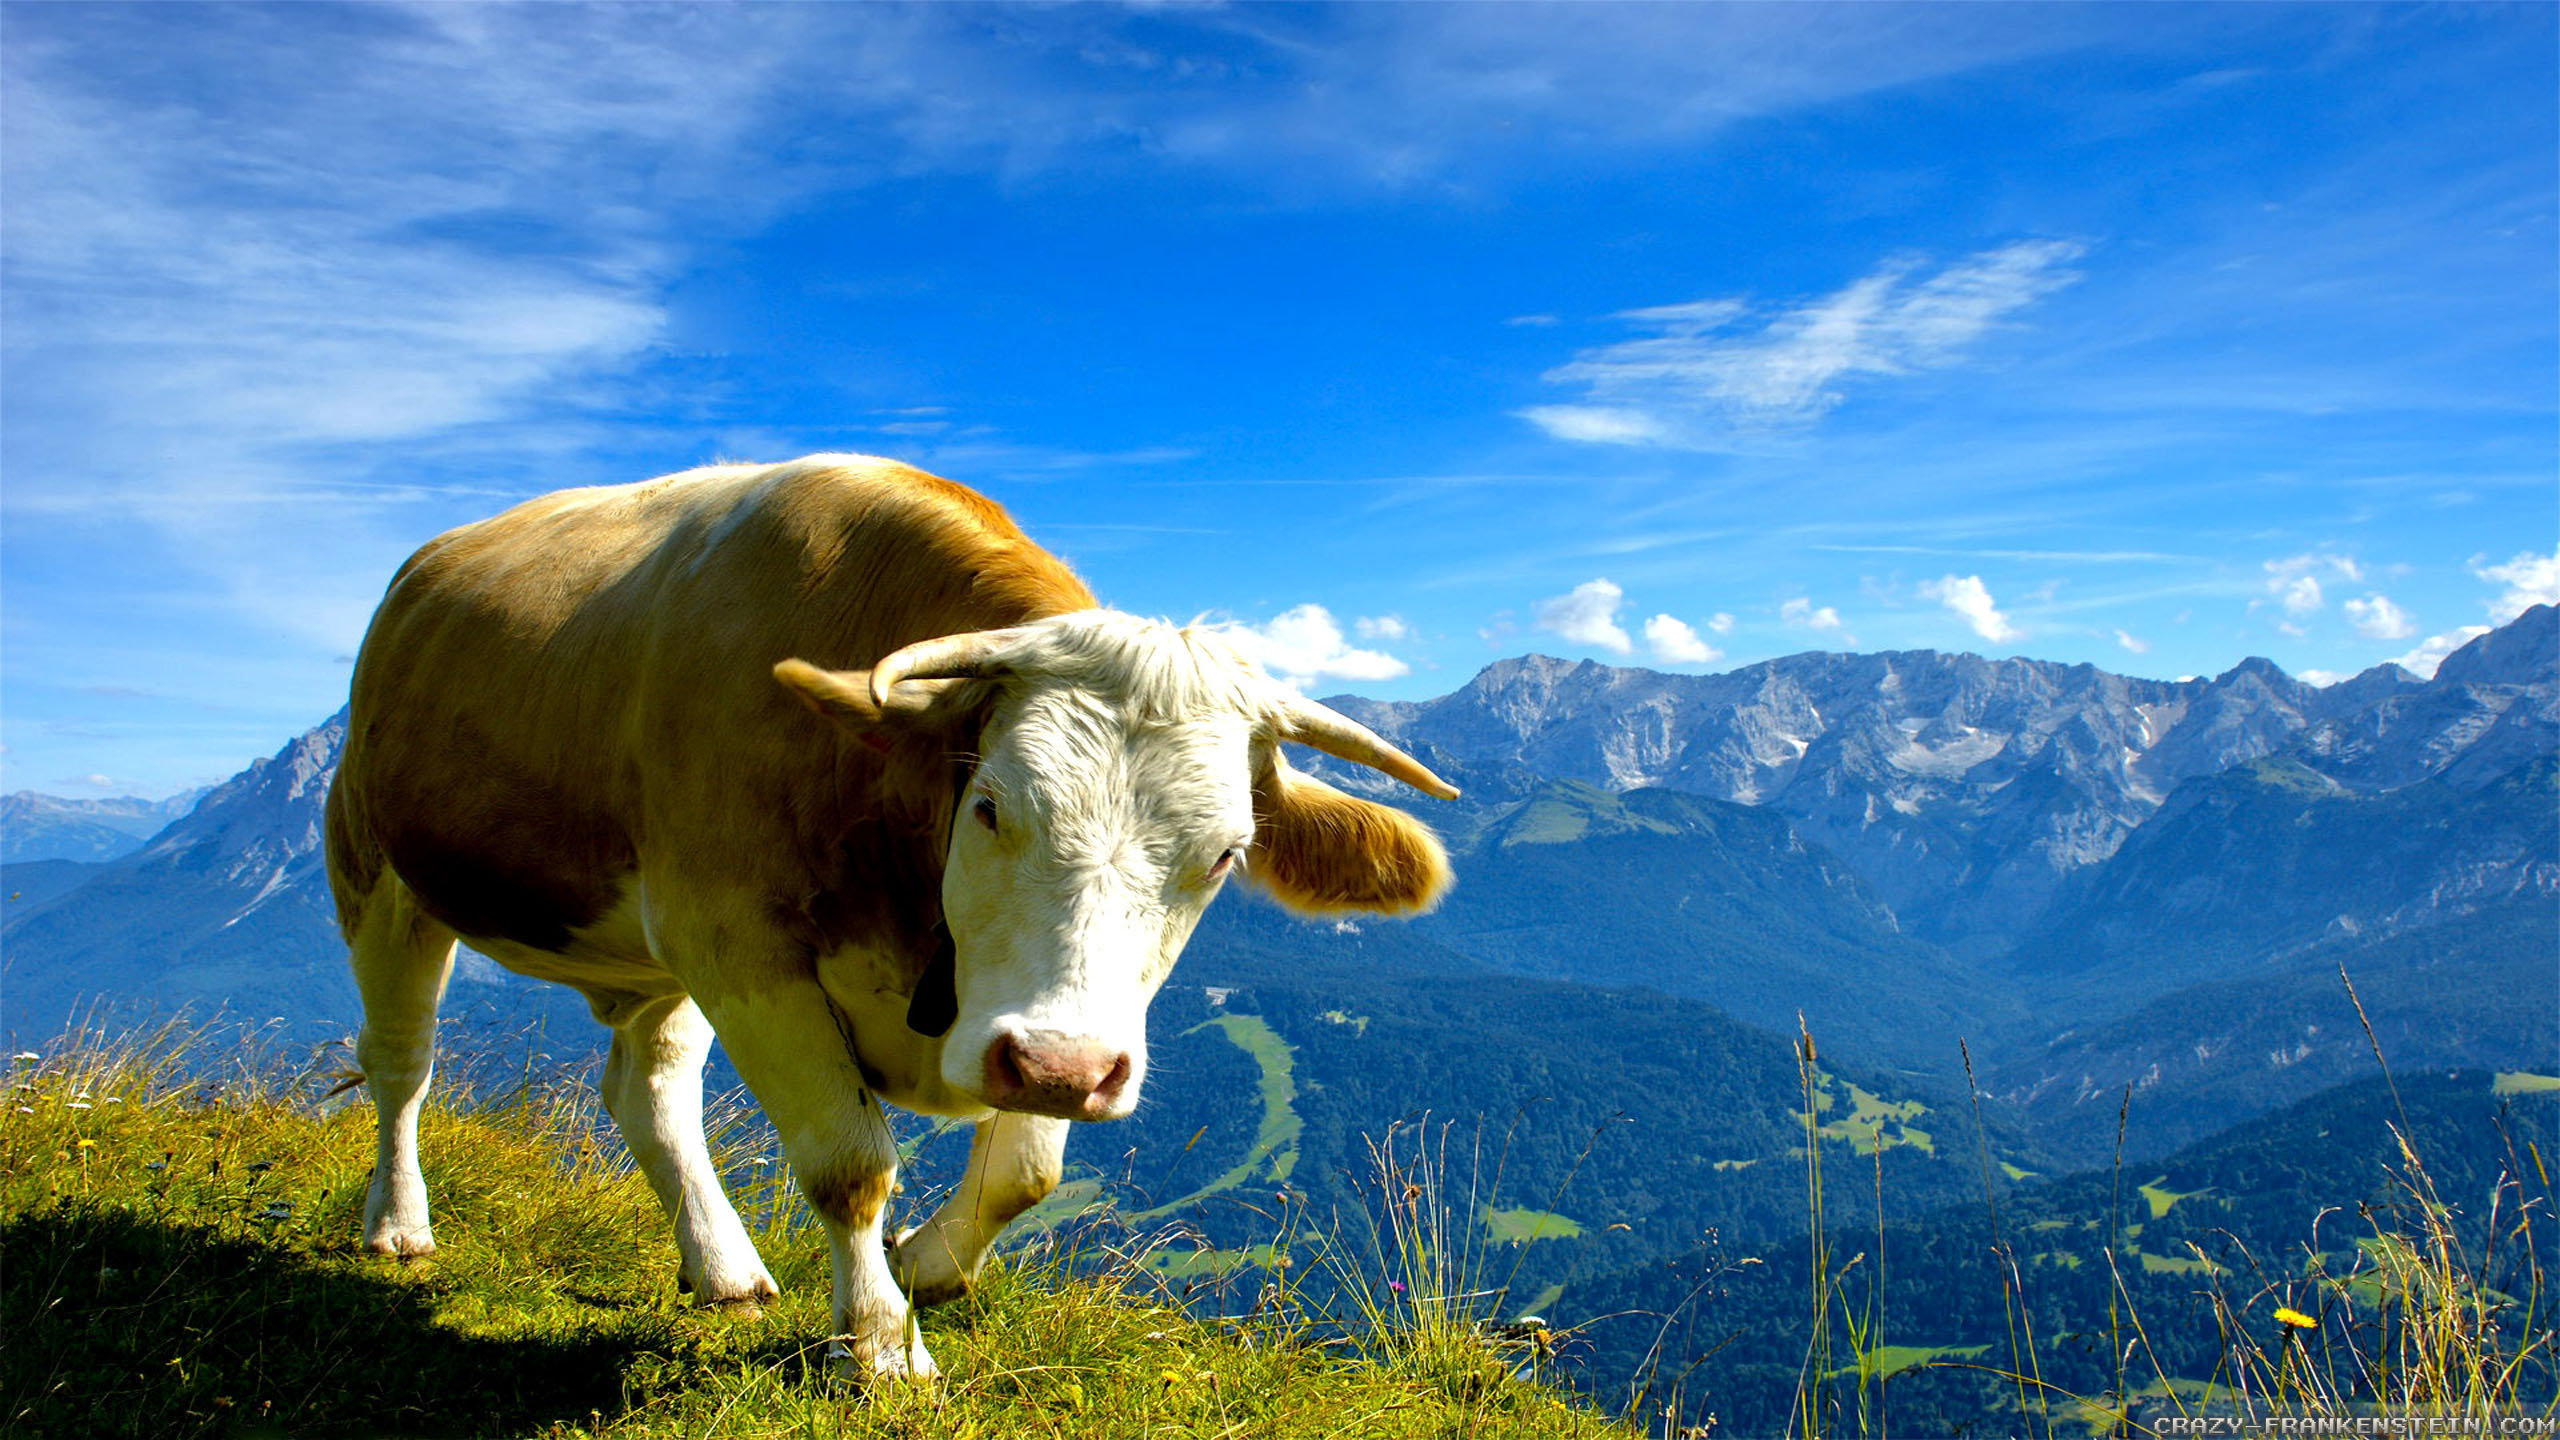 Free download Cow wallpaper ID:466901 hd 2560x1440 for PC